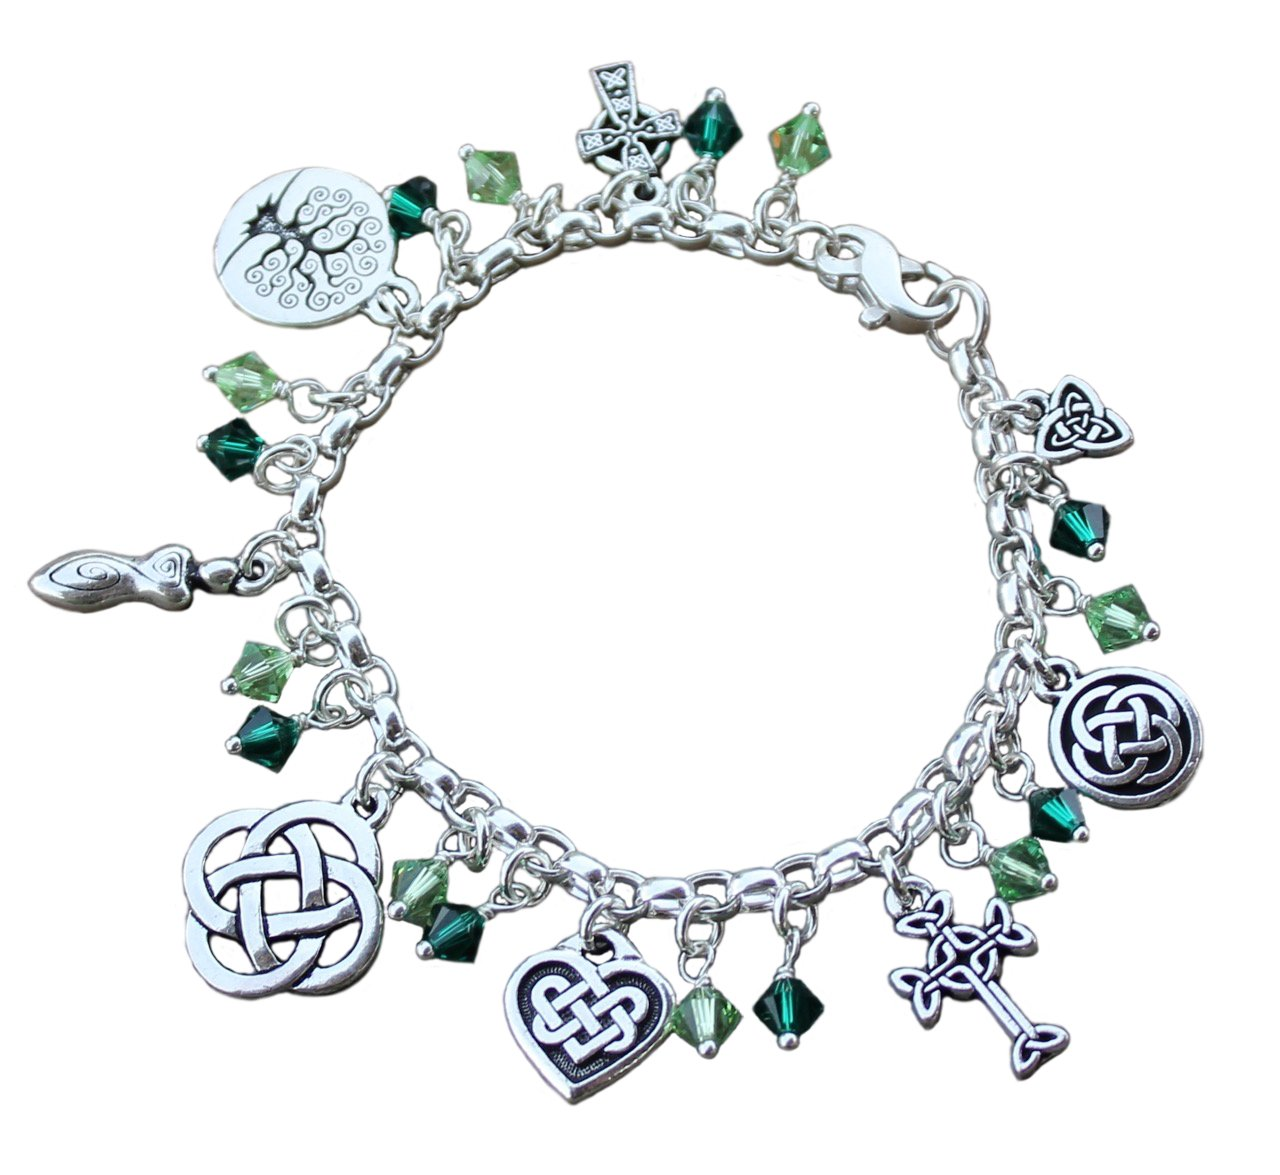 Silver Plated Deluxe Celtic Knots Charm Bracelet, Heavy Sterling Silver Chain, Green Crystals- Size Medium (7.5 Inches)